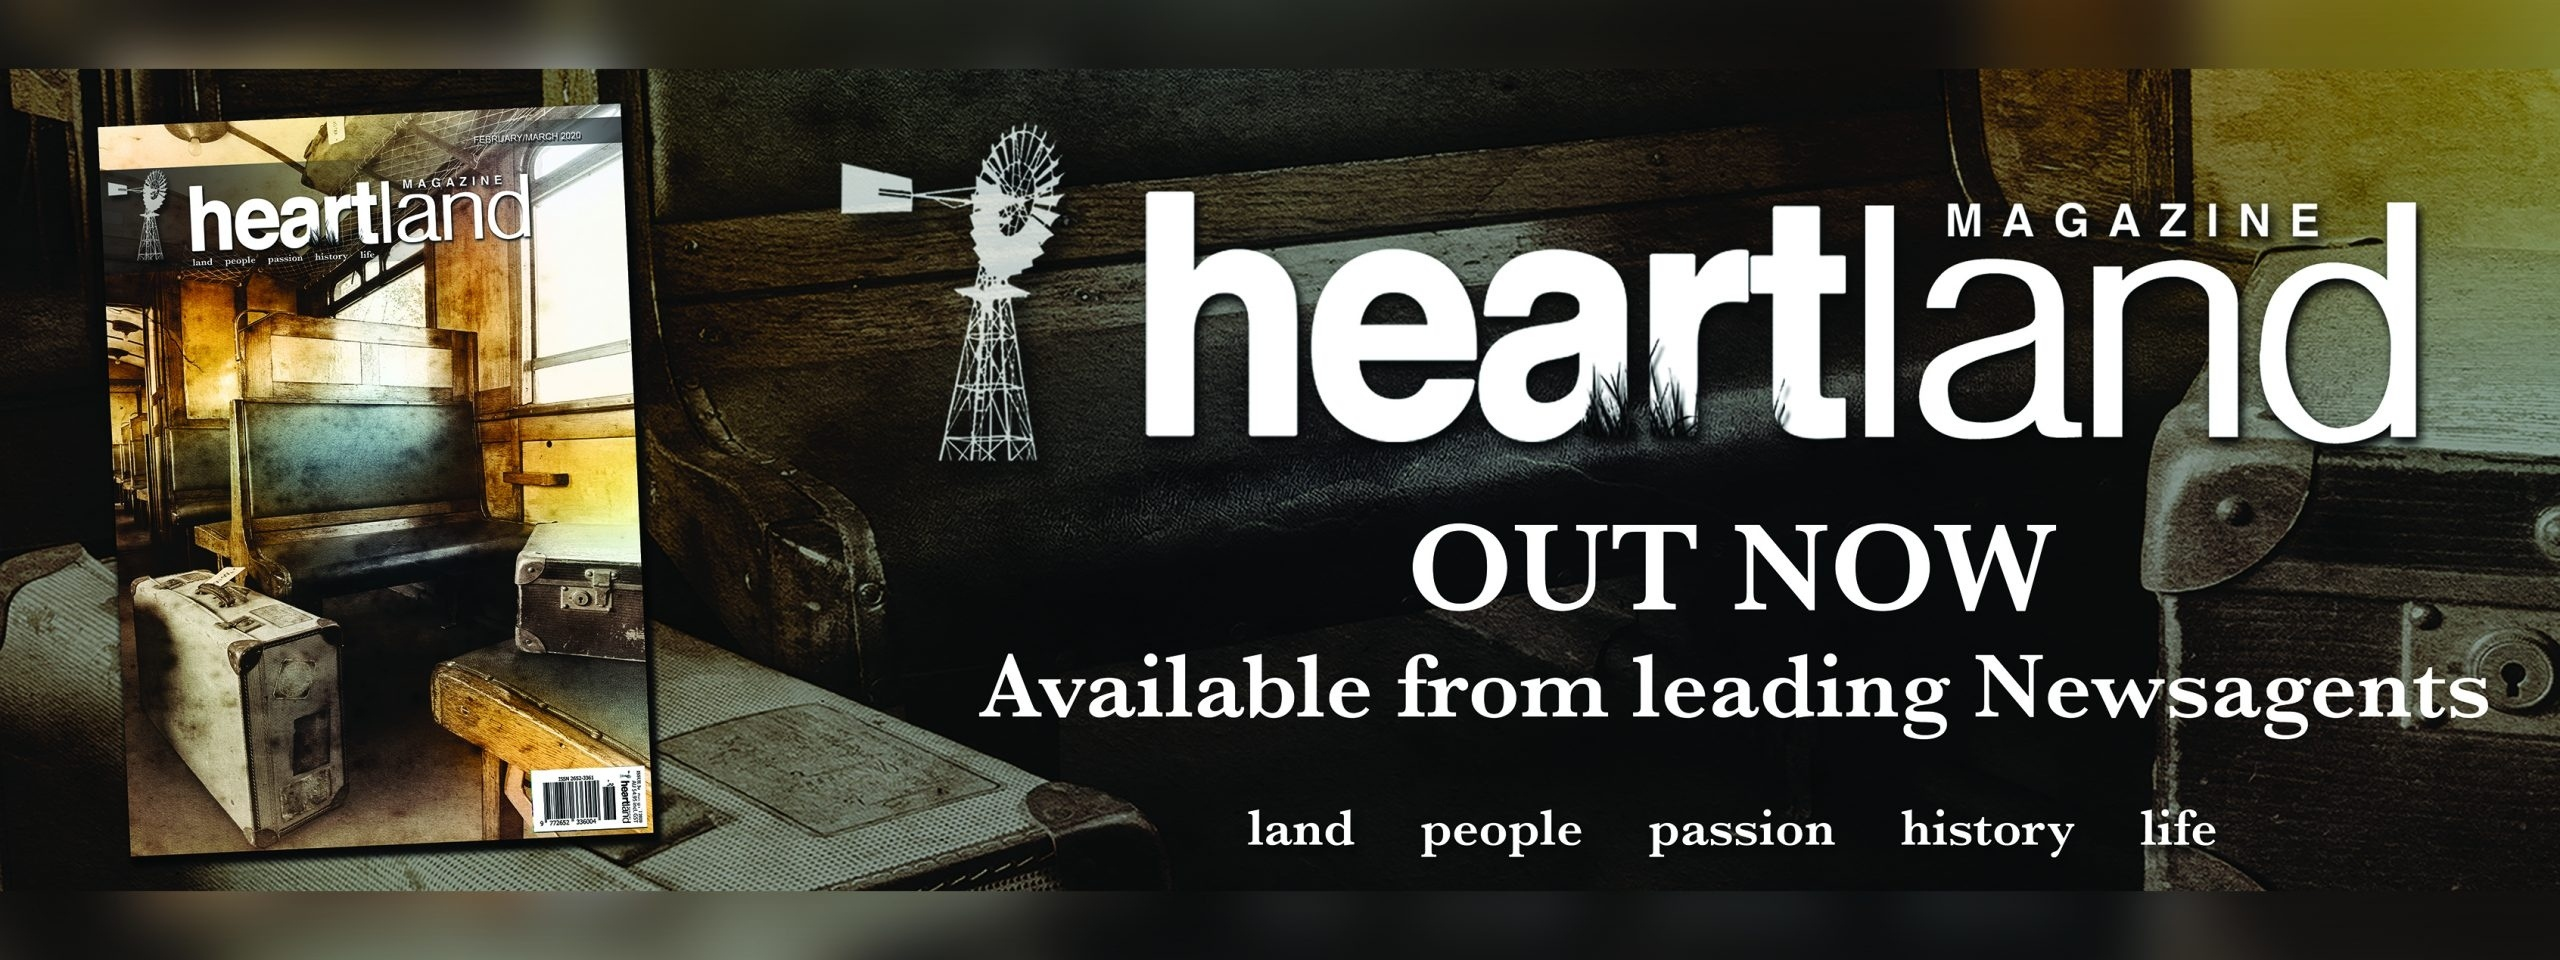 Heartland Magazine Australia News, History and Events